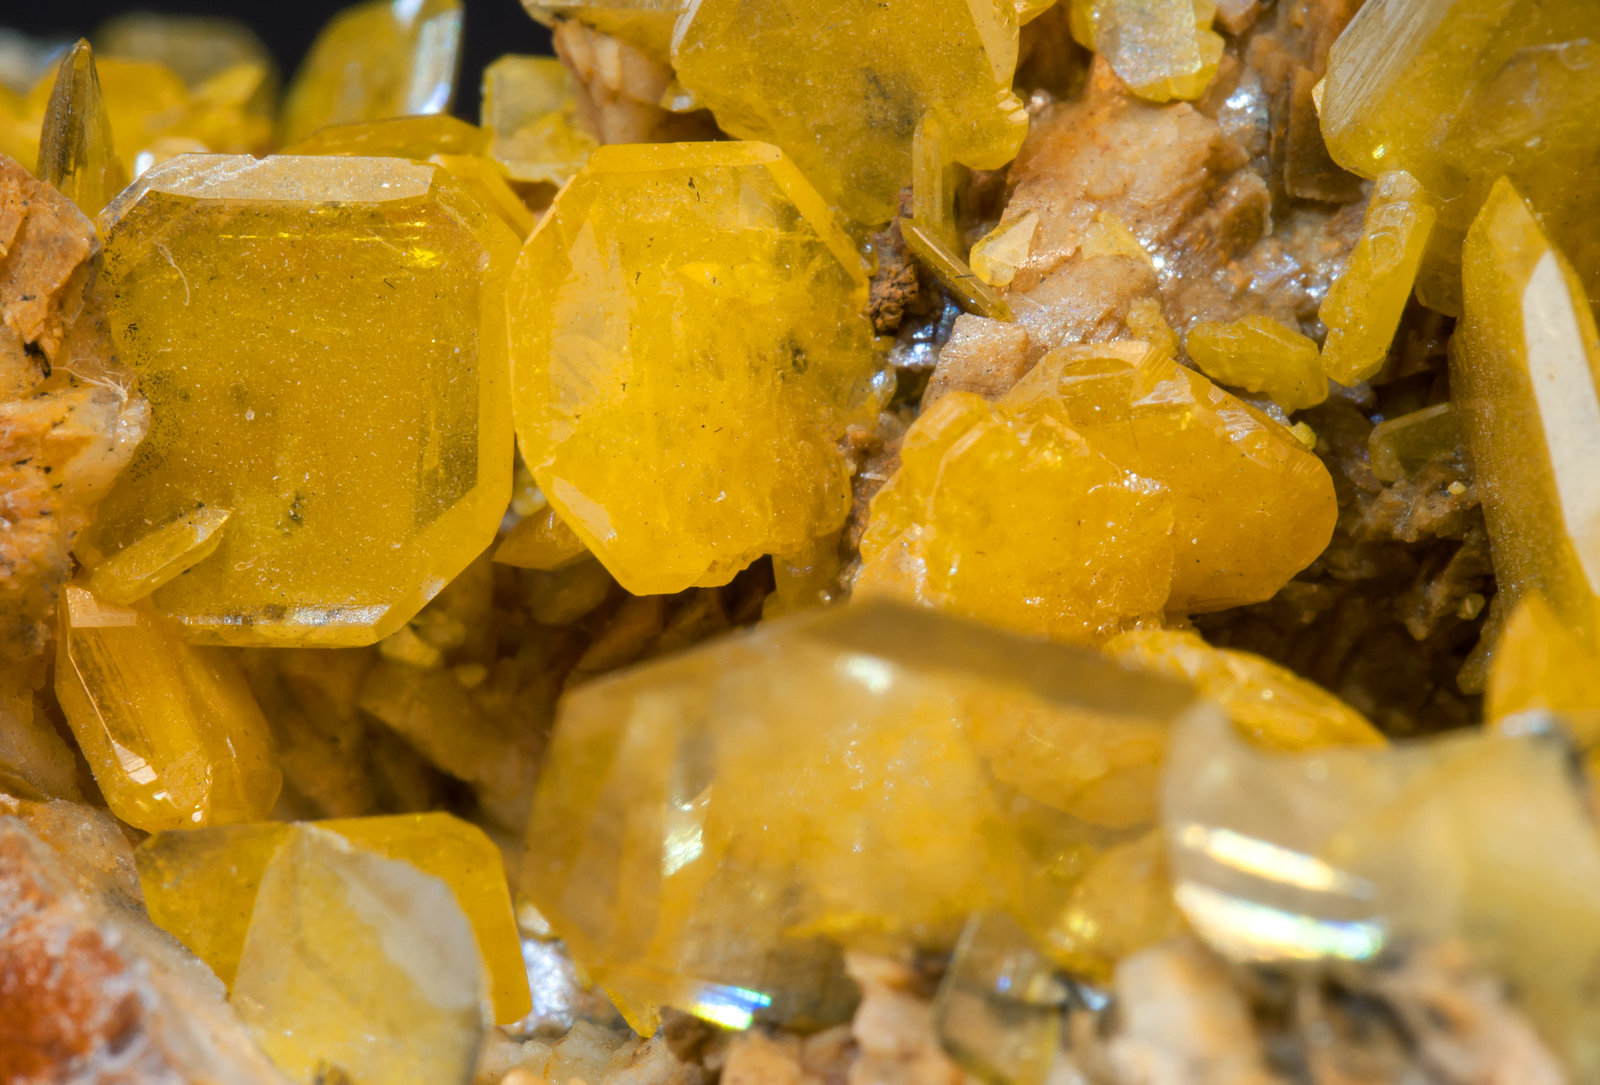 specimens/s_imagesAG3/Wulfenite-A29KAG3d1.jpg